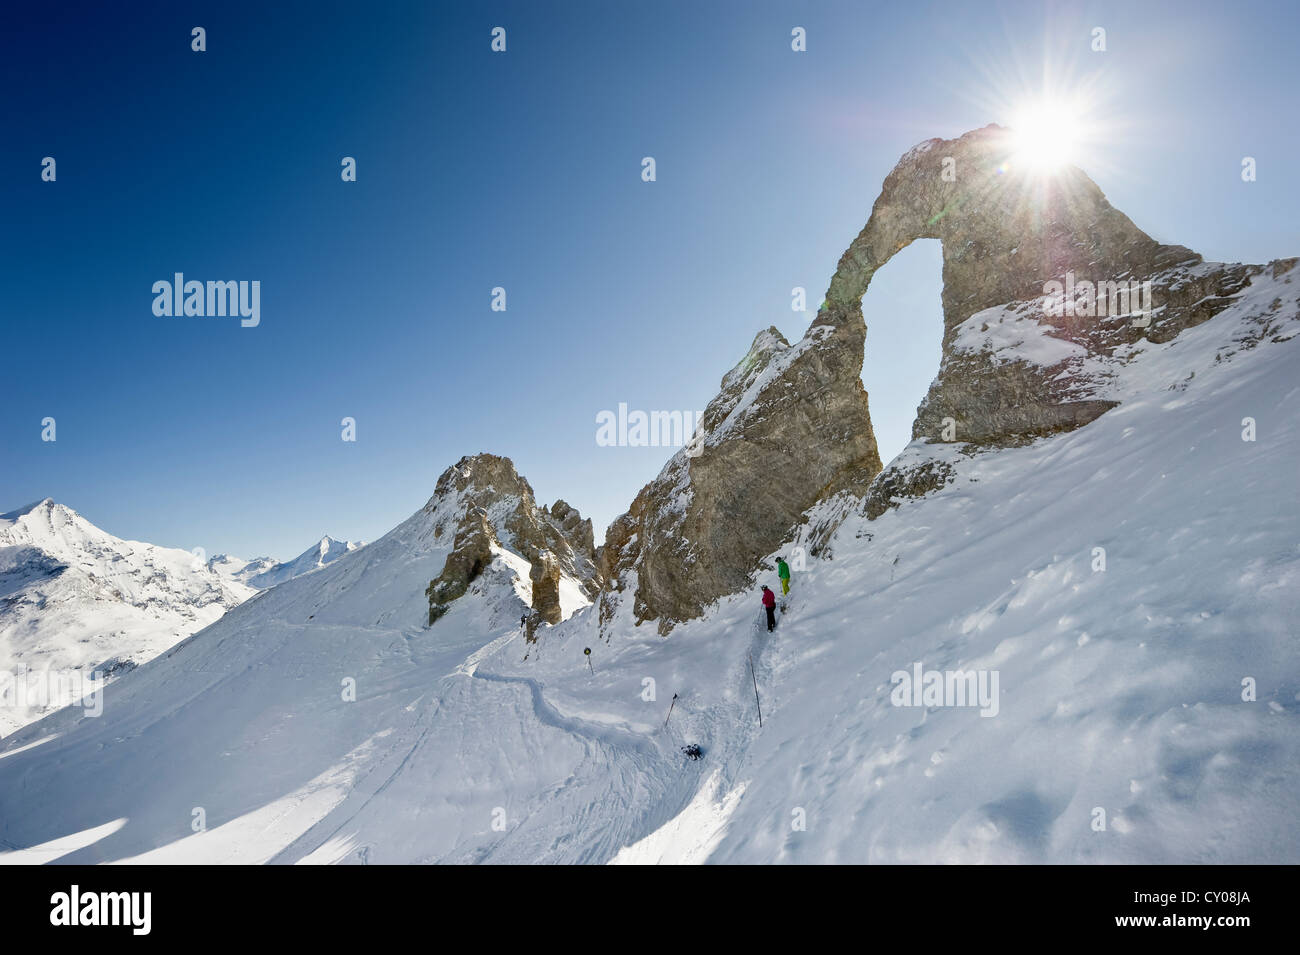 Aiguille Percee, Tignes, Val d'Isere, Savoie, Alps, France, Europe - Stock Image